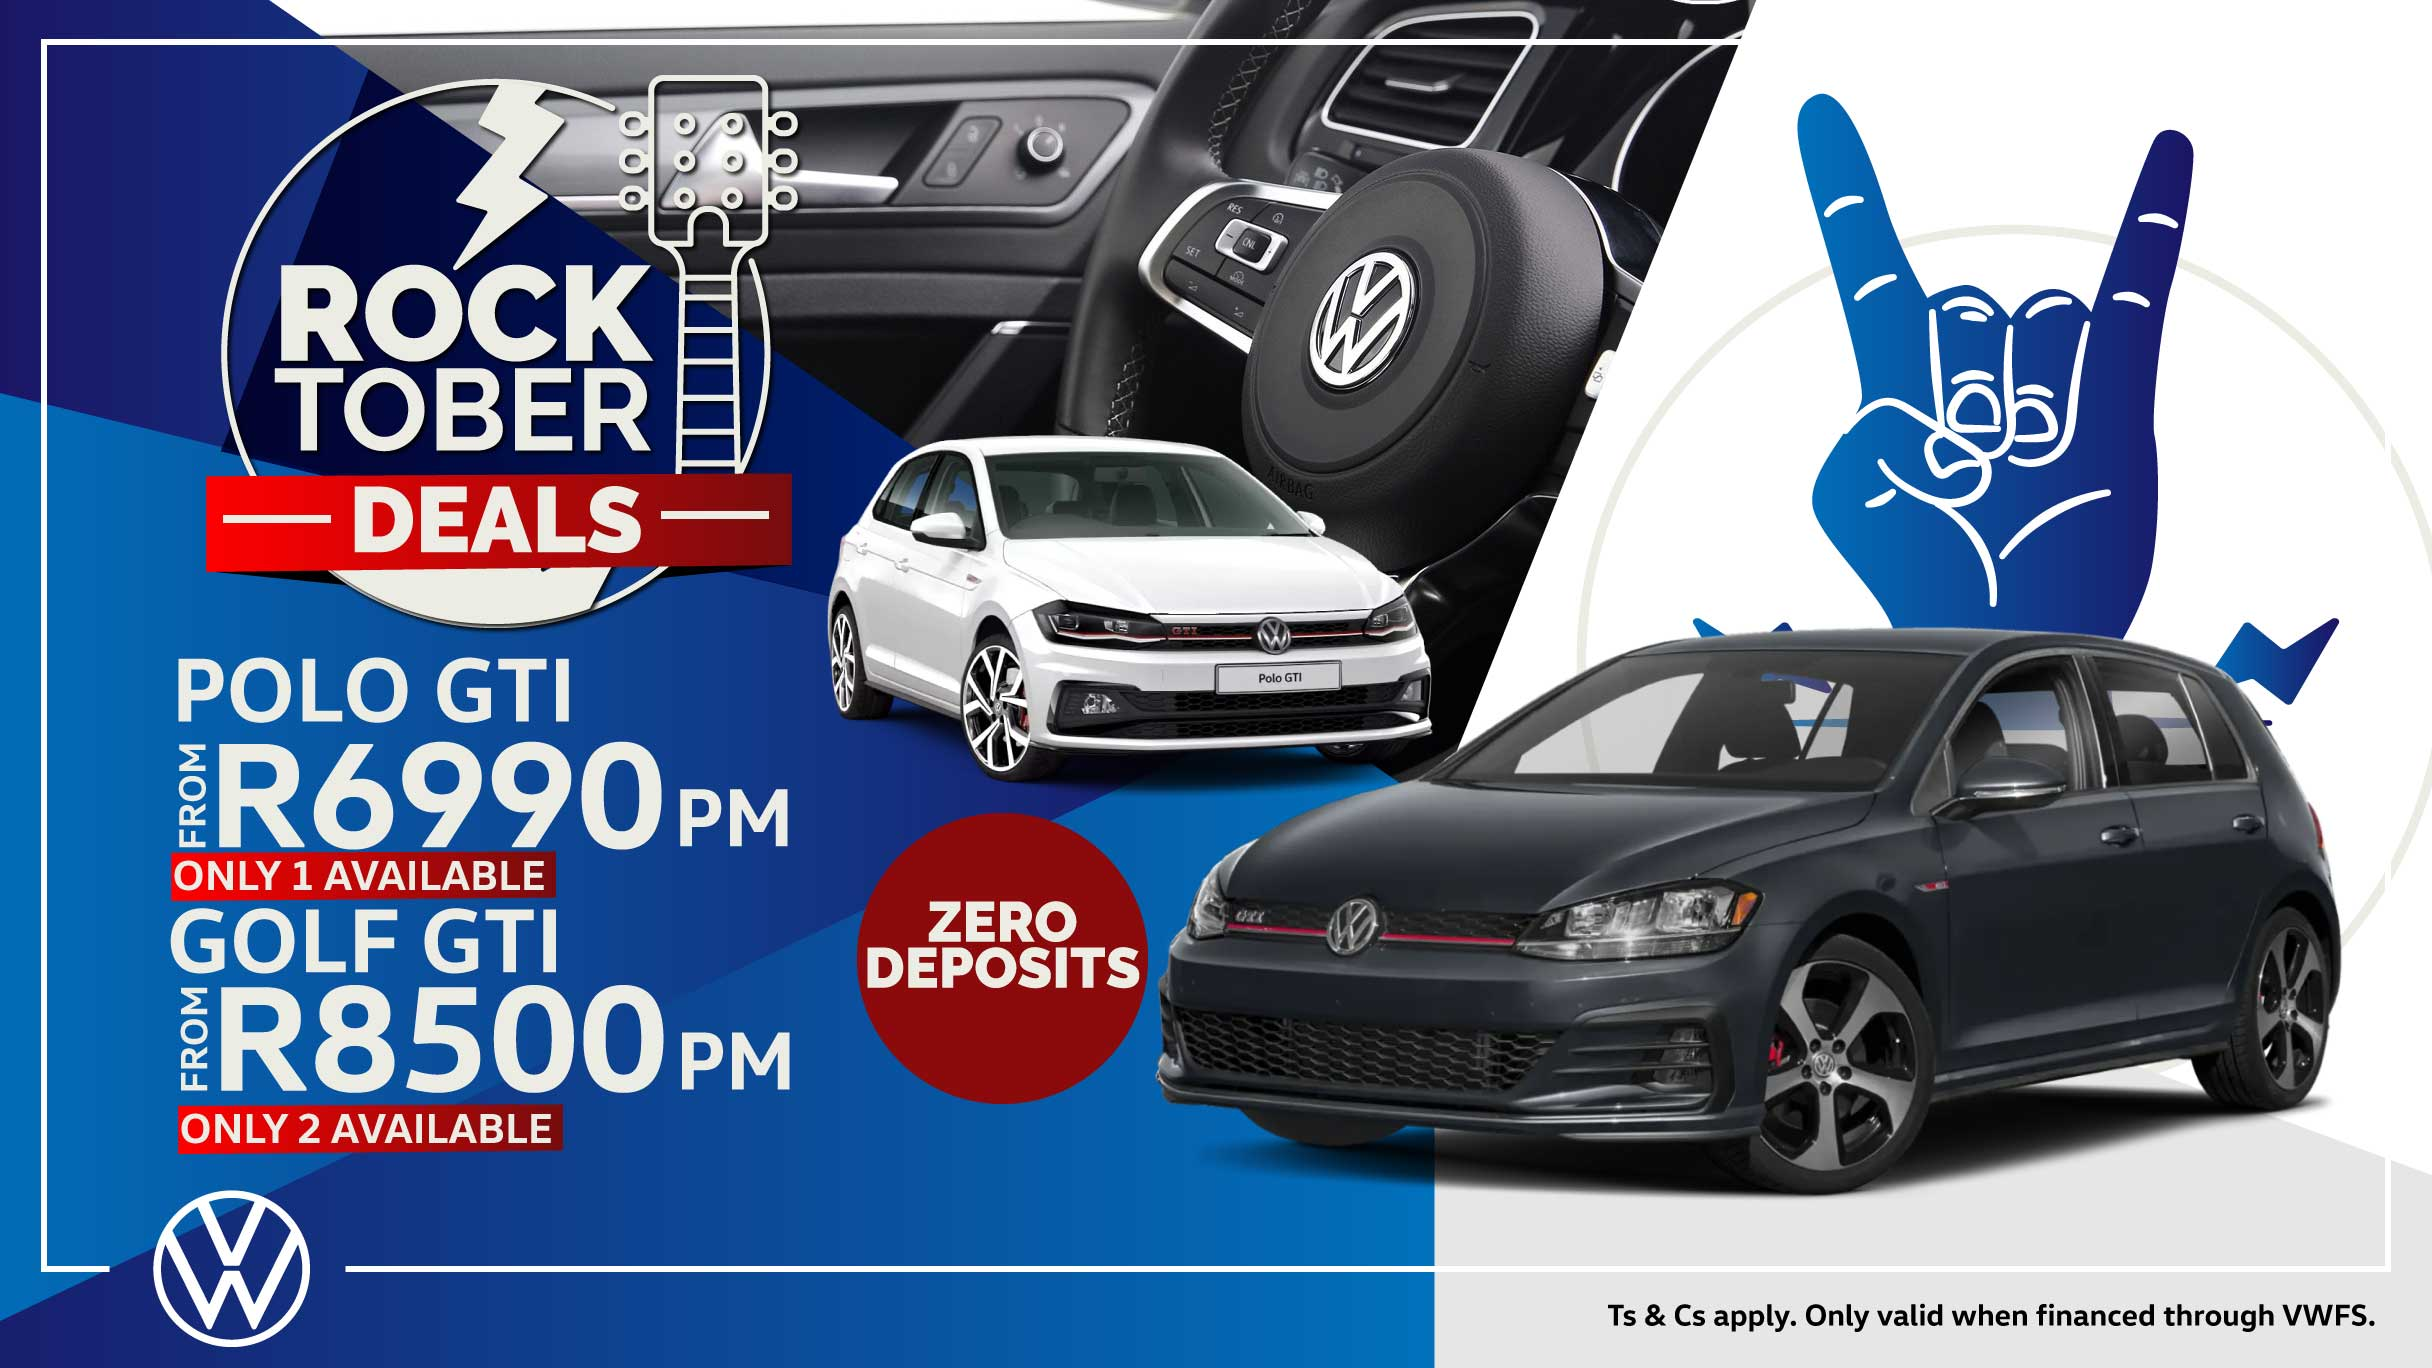 Barons Cape Town Polo GTI and Golf GTI offer